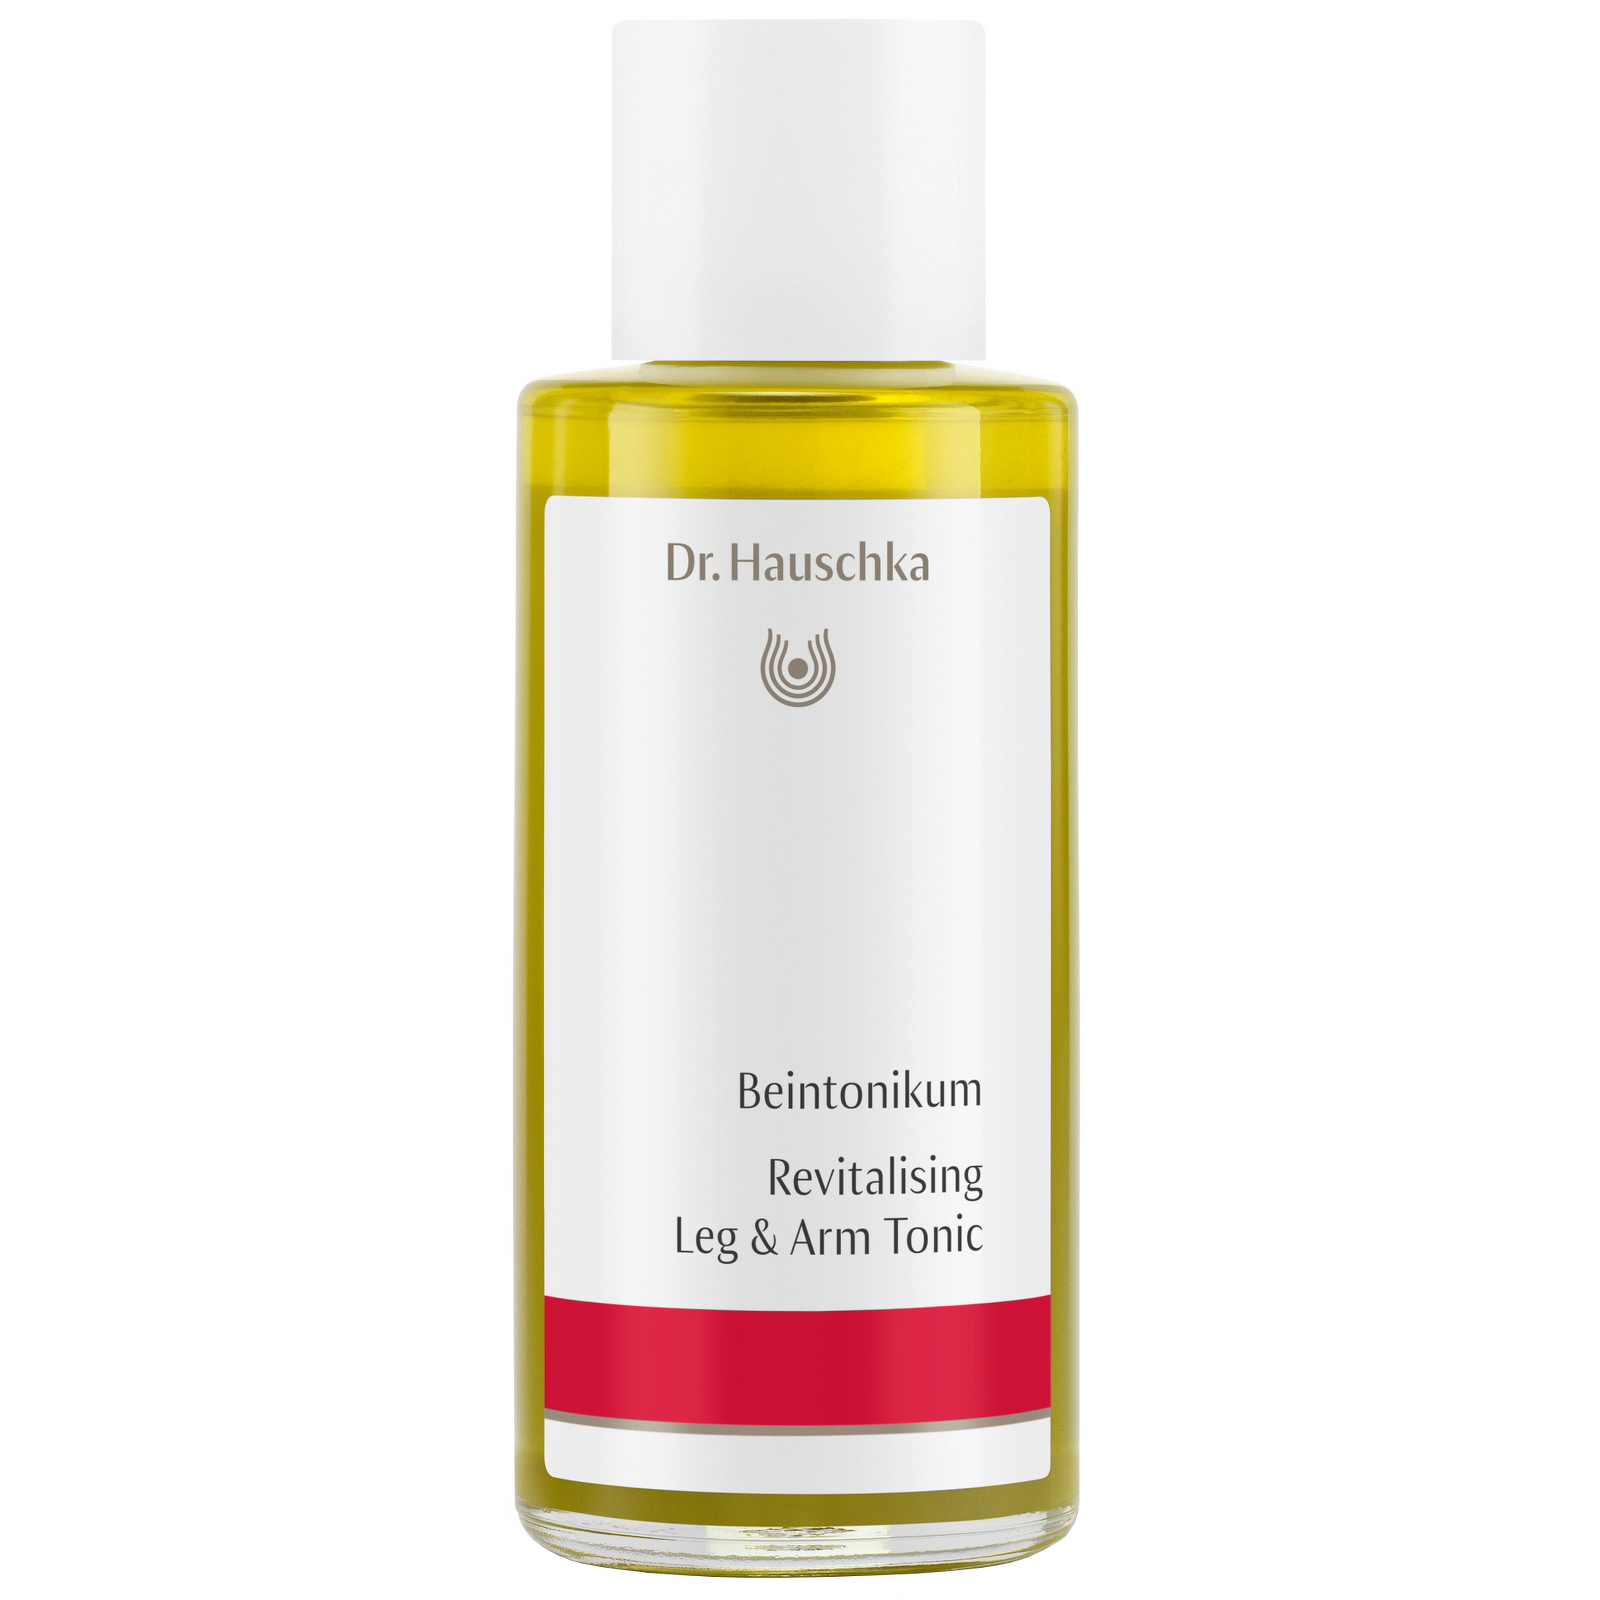 Dr. Hauschka Body Care Revitalising Leg and Arm Tonic 100ml